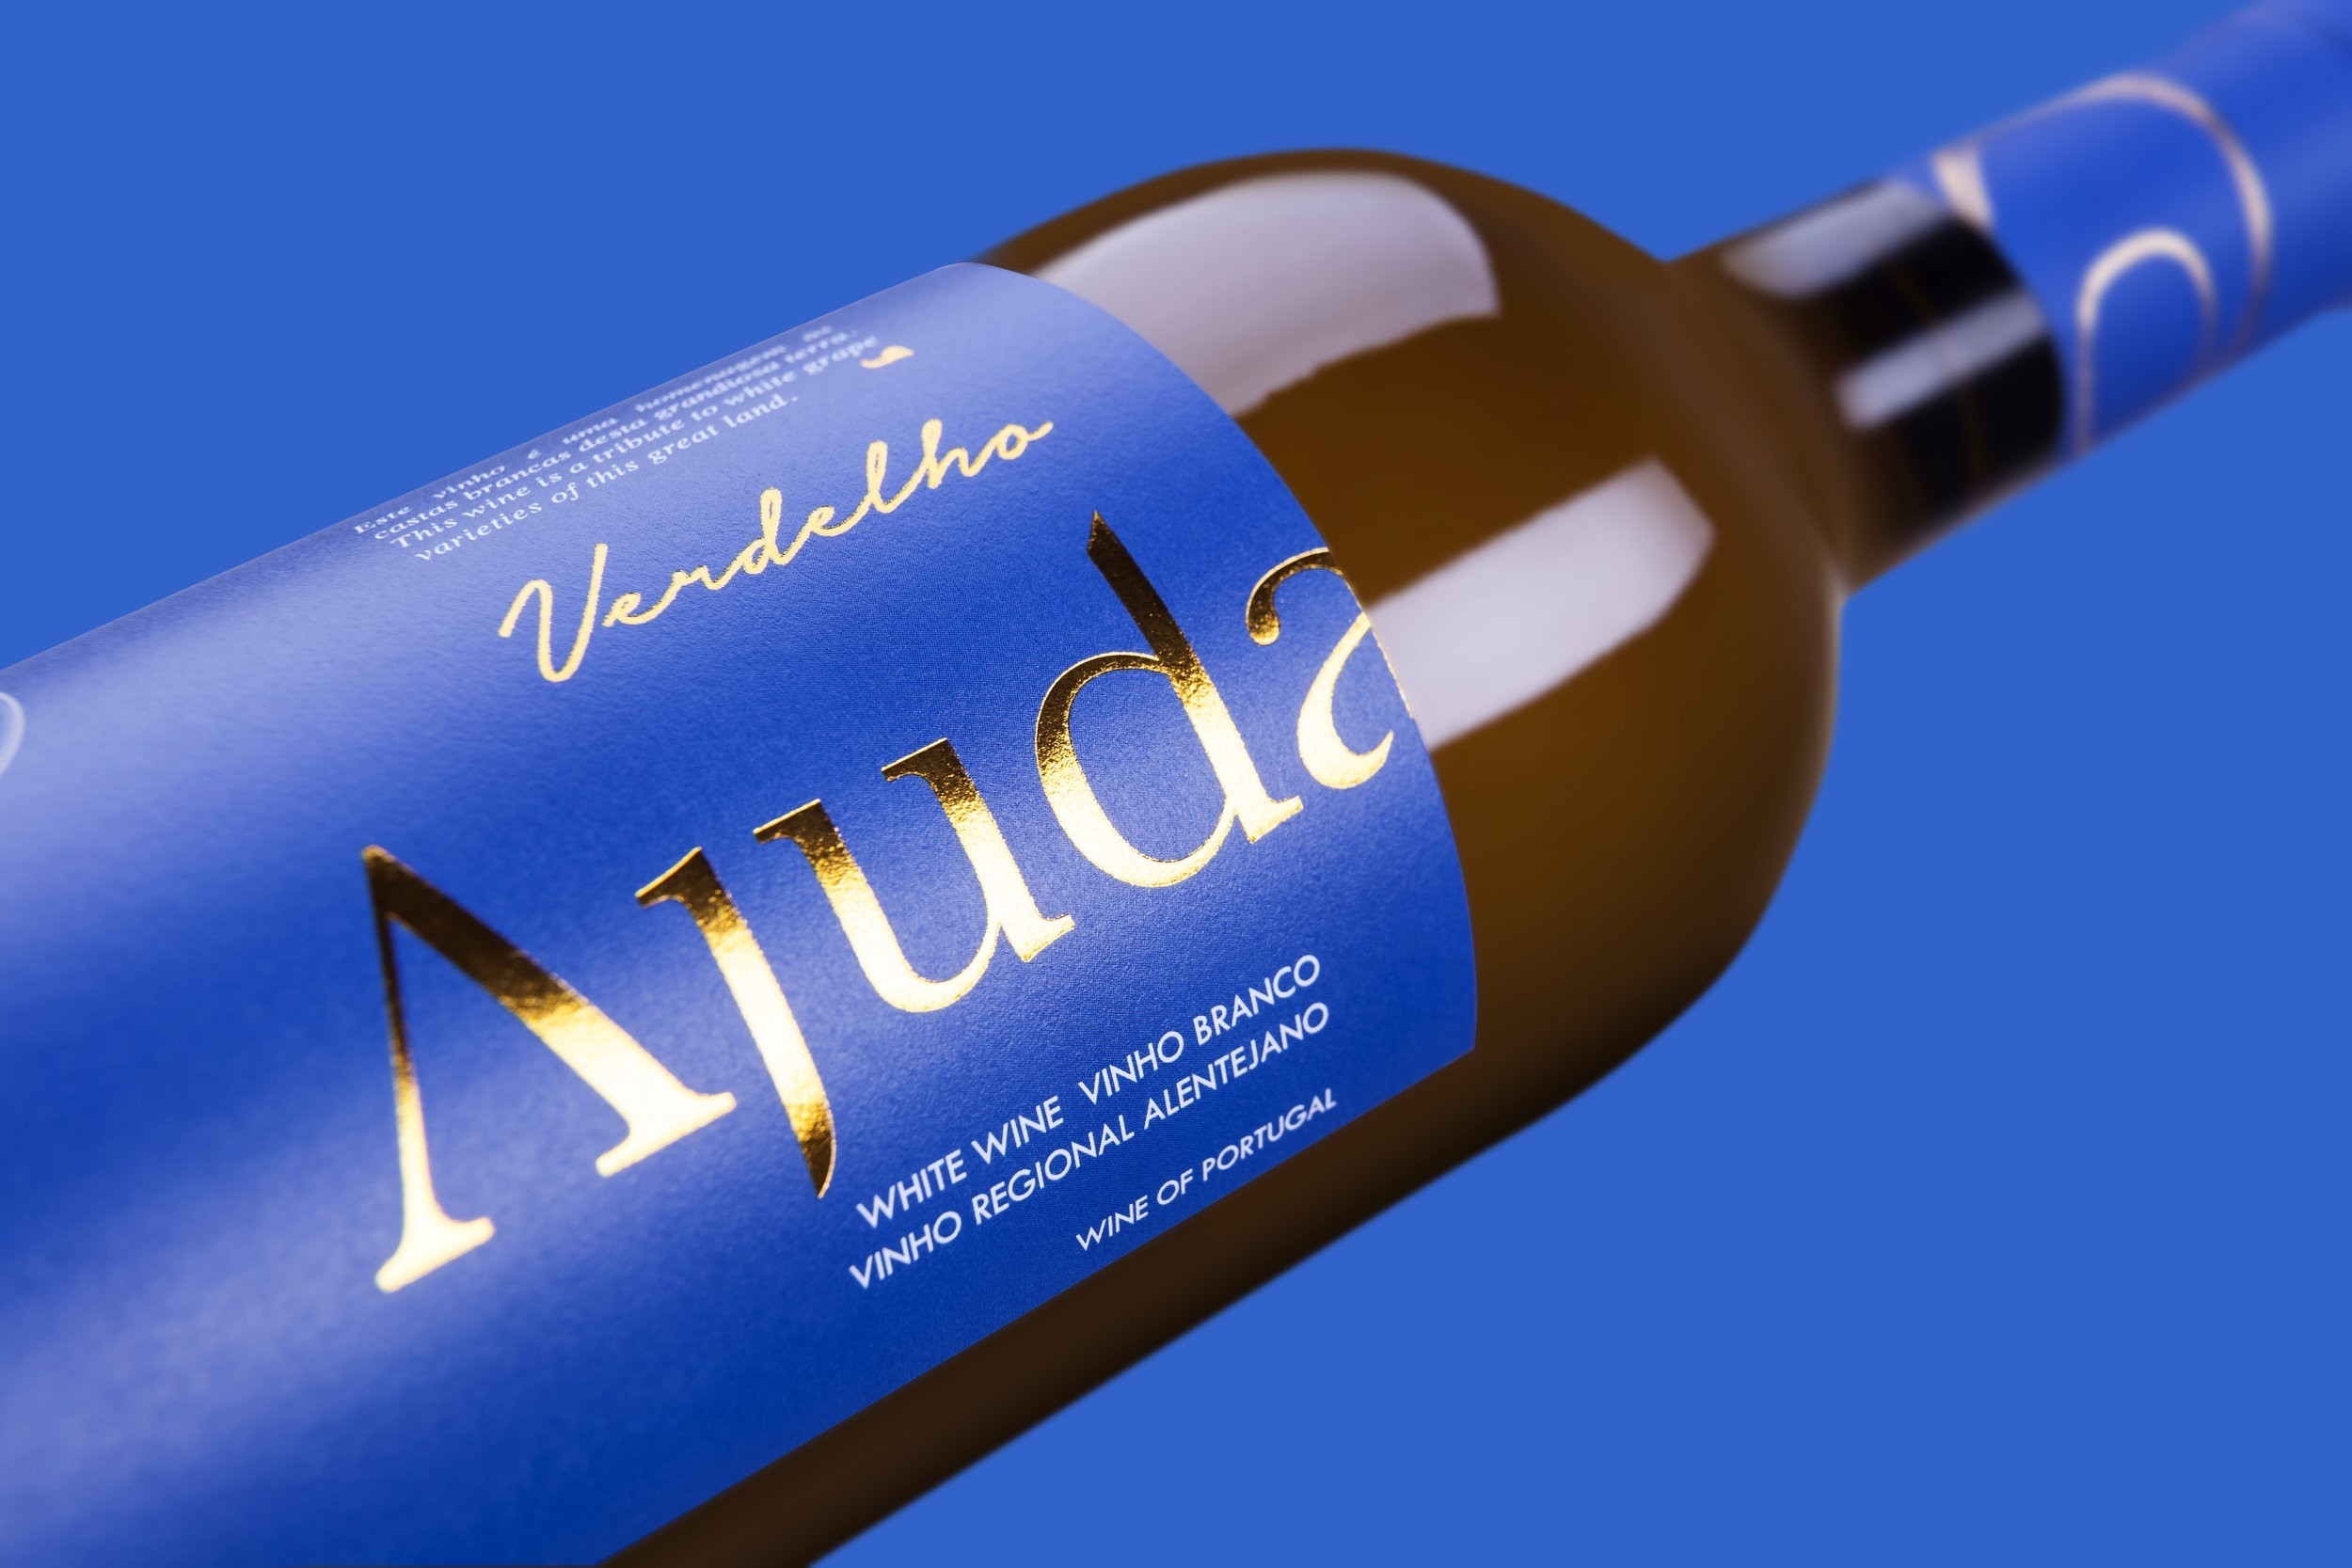 Portuguese Wine Label Utilises Contrasting Vibrant Blue and Stamped Foil Gold